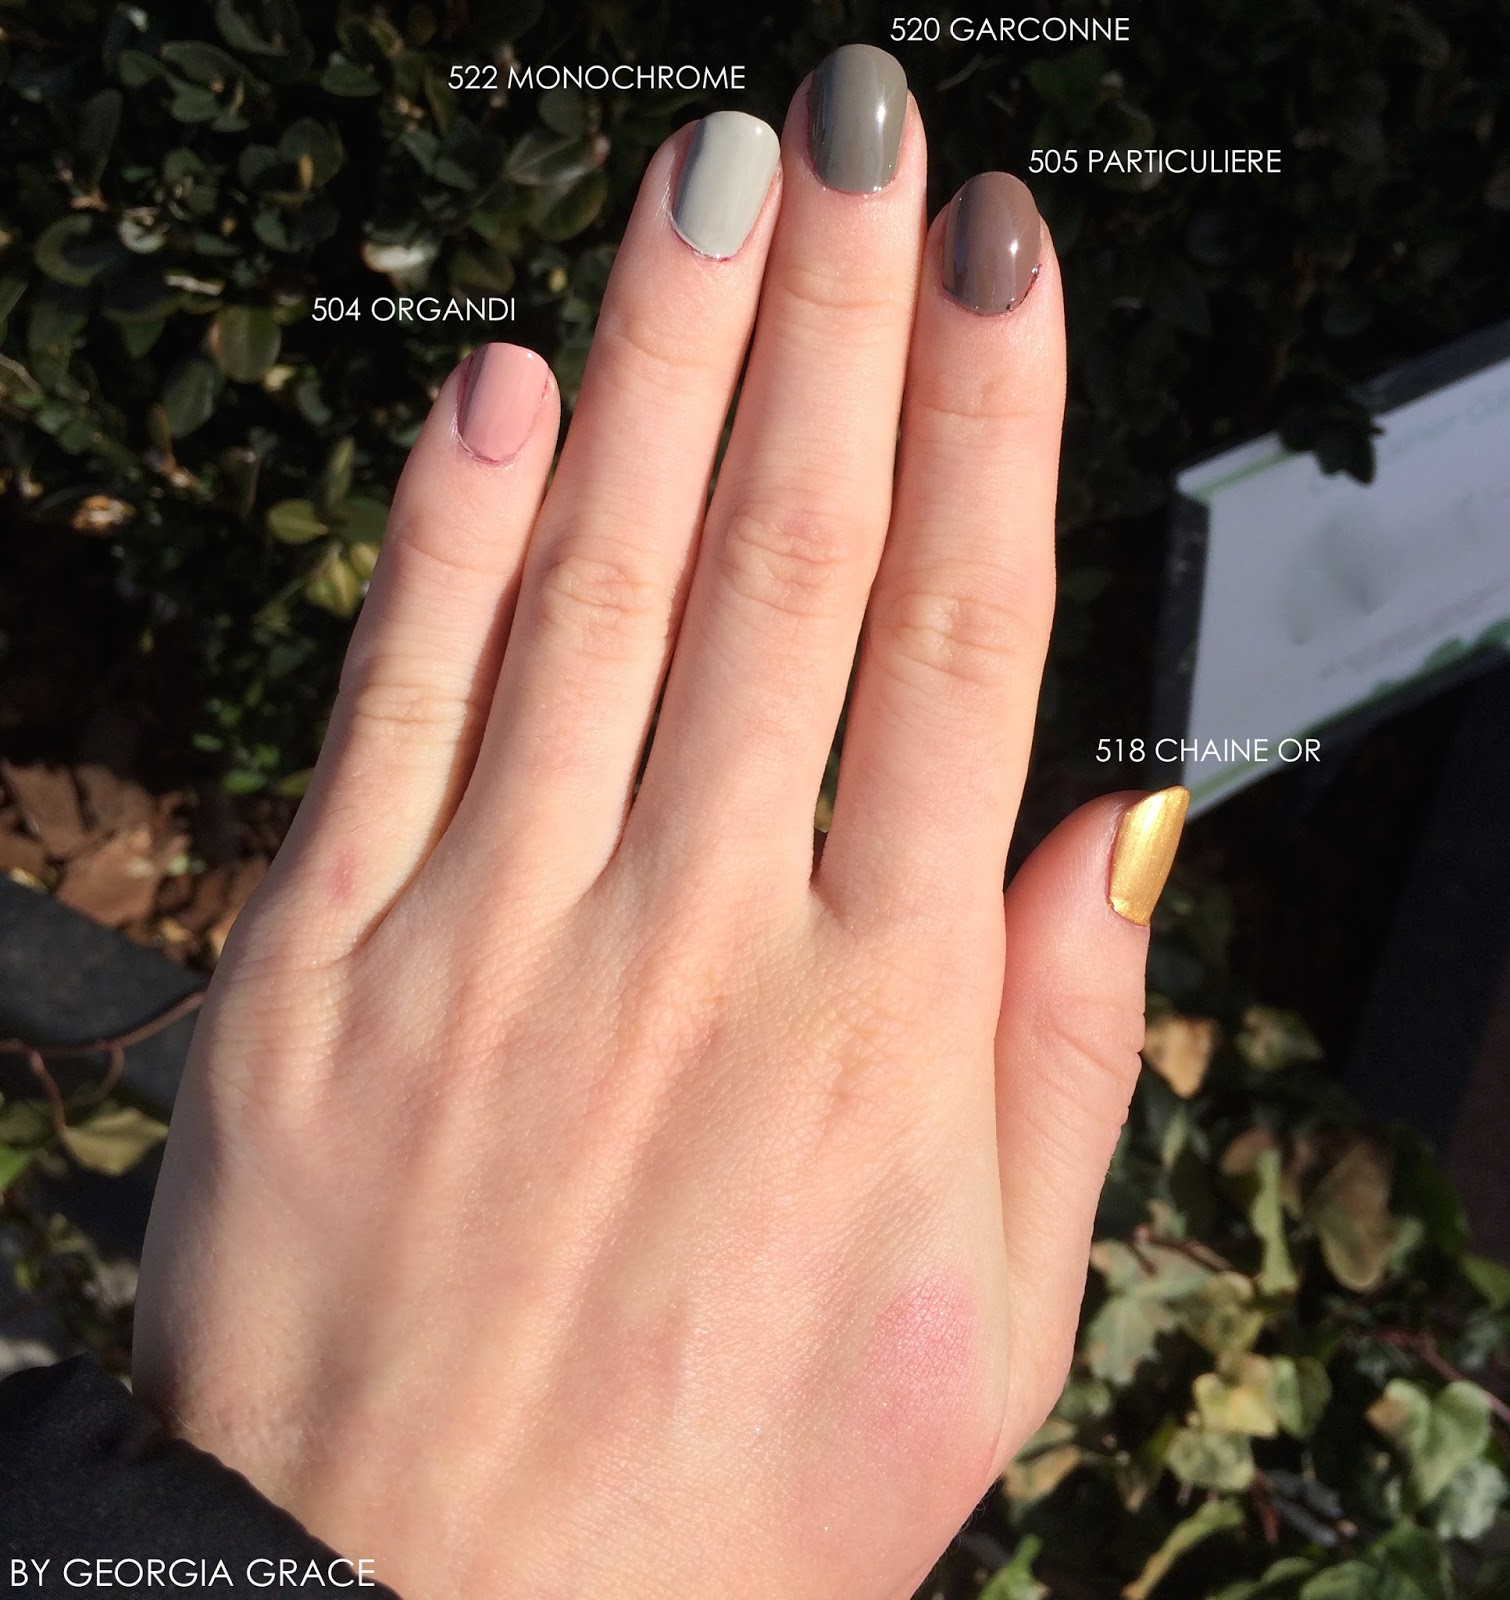 Chanel NEW Le Vernis Longwear Collection Swatches & Review | By ...